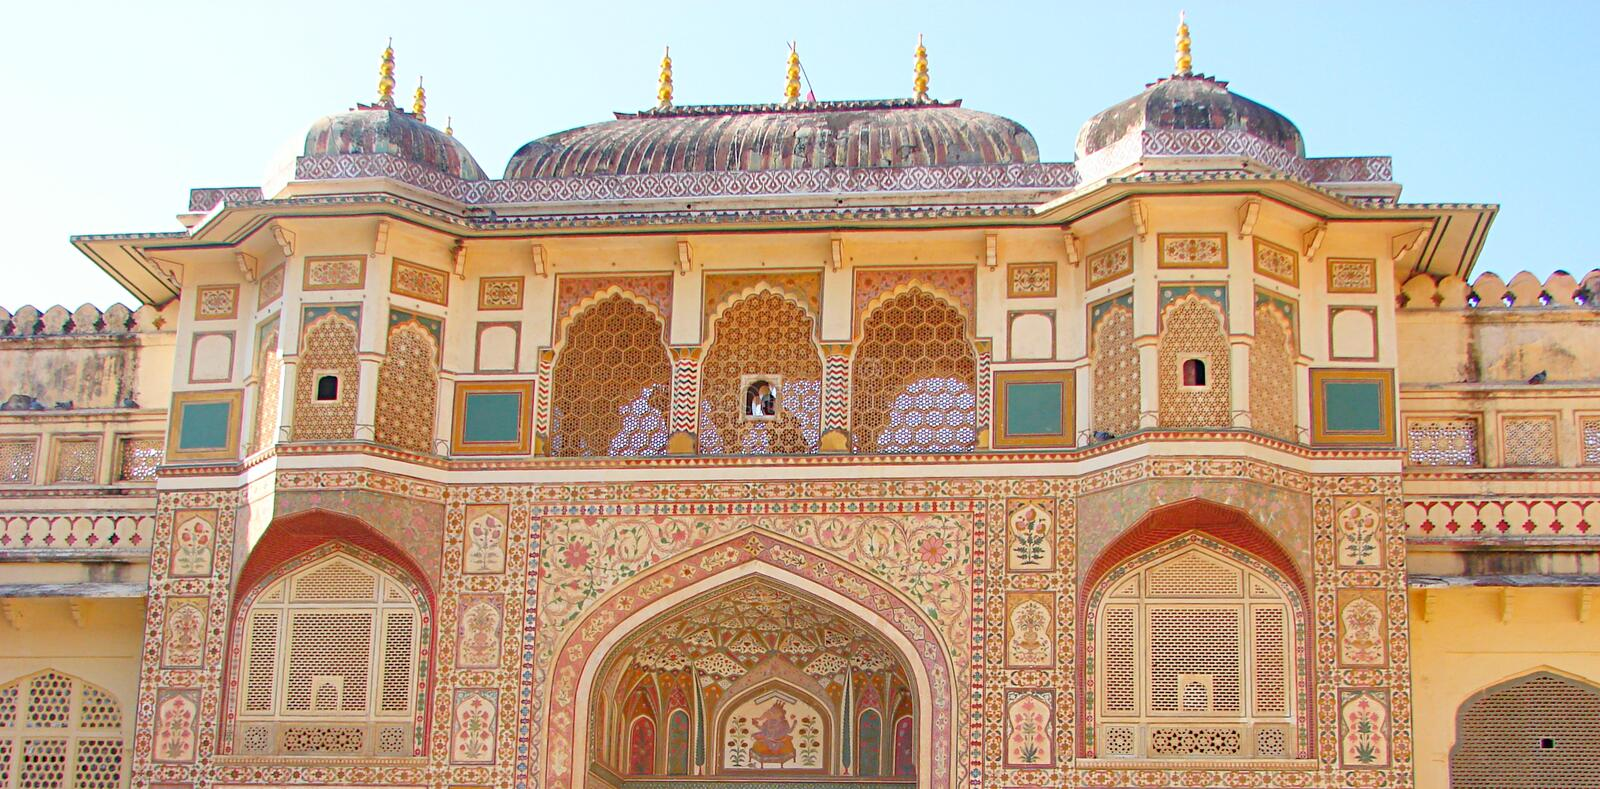 Ganesh Pol, Amer Fort, Jaipur, Rajasthan, India. This is a photograph of Ganesh Pol or Ganesh Gate in Amer Fort, in Jaipur, Rajasthan, India stock photos